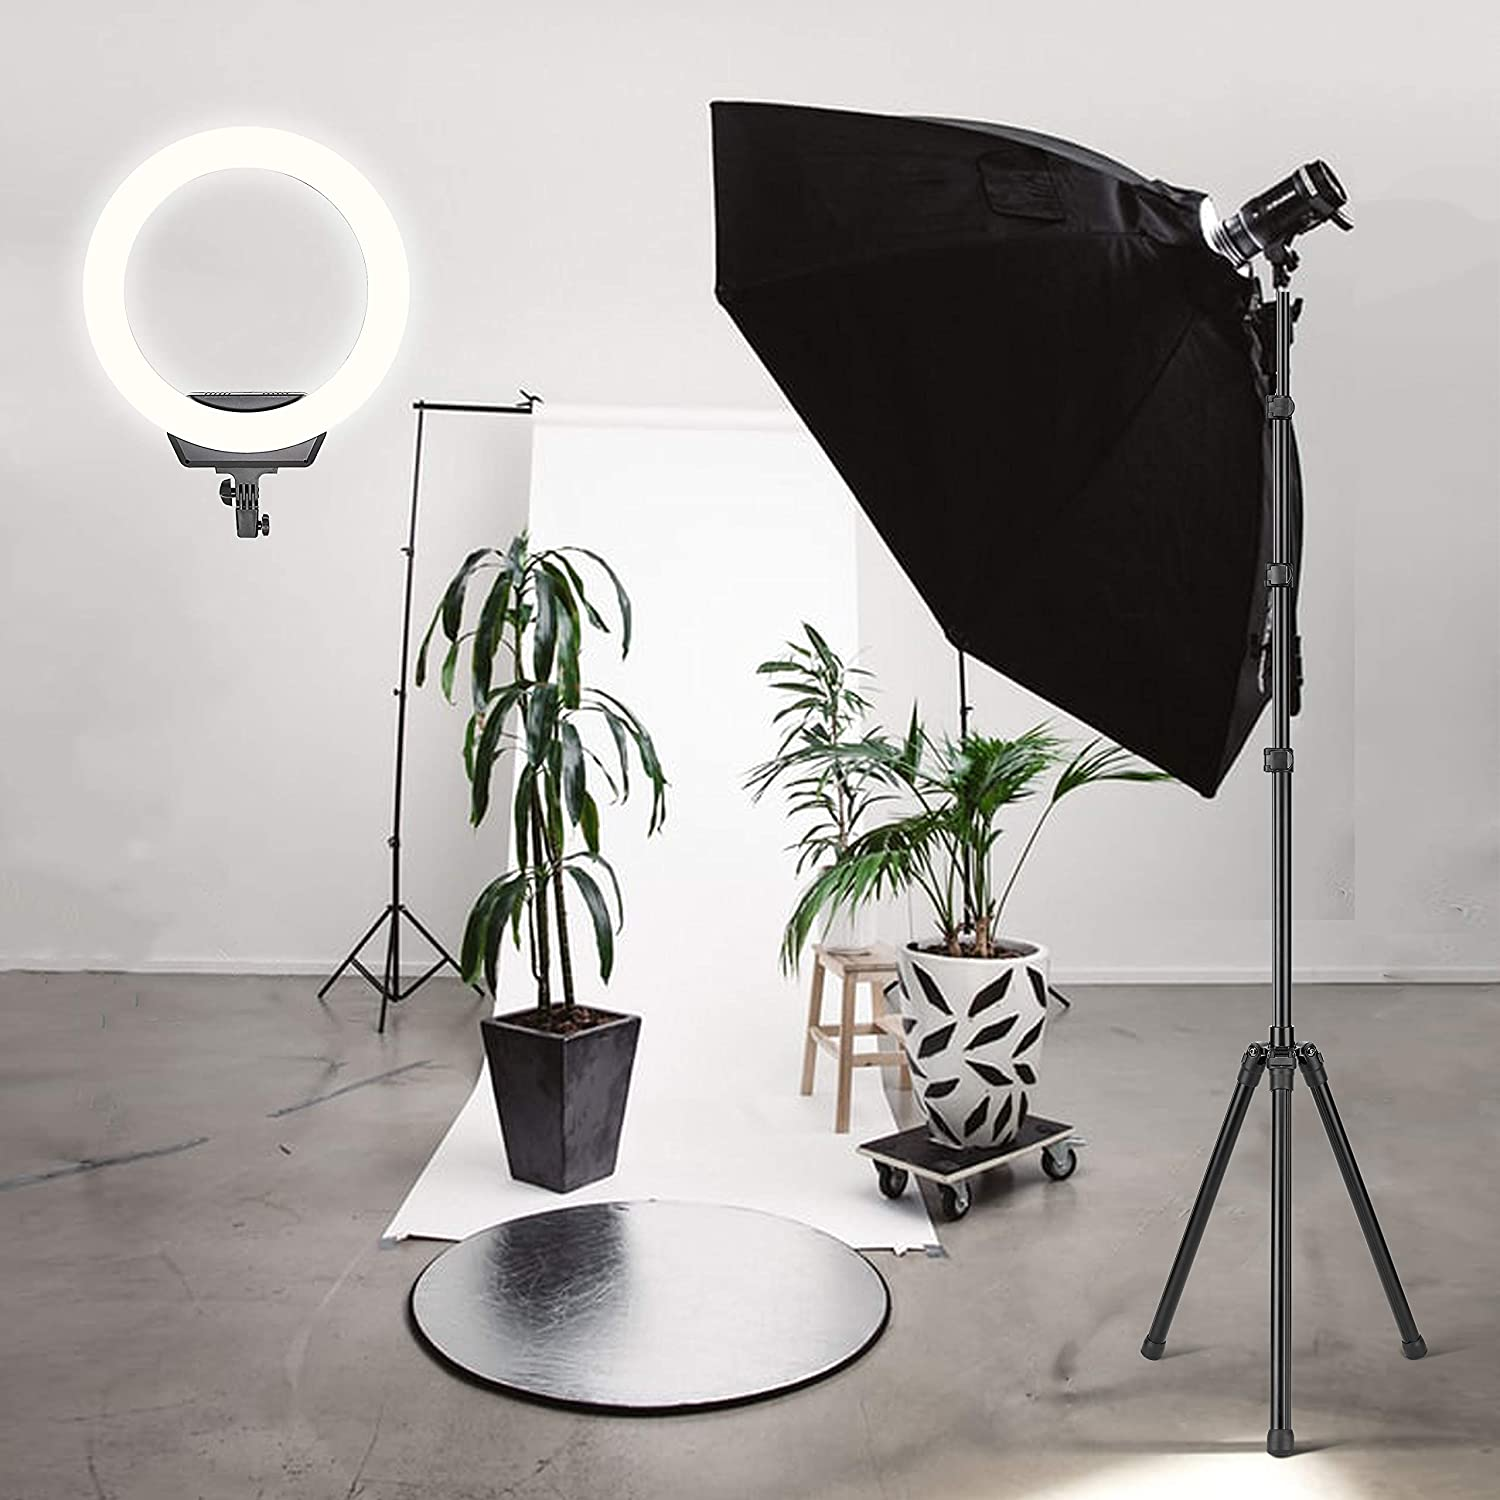 with Tripod and Phone Holder Carrying Bag for Camera,Smartphone,YouTube,Self-Portrait Shooting( Protect Eyes) ZOMEi Ring Light 16 //40.5cm Outer 3200-5600K Dimmable LED Ring Light